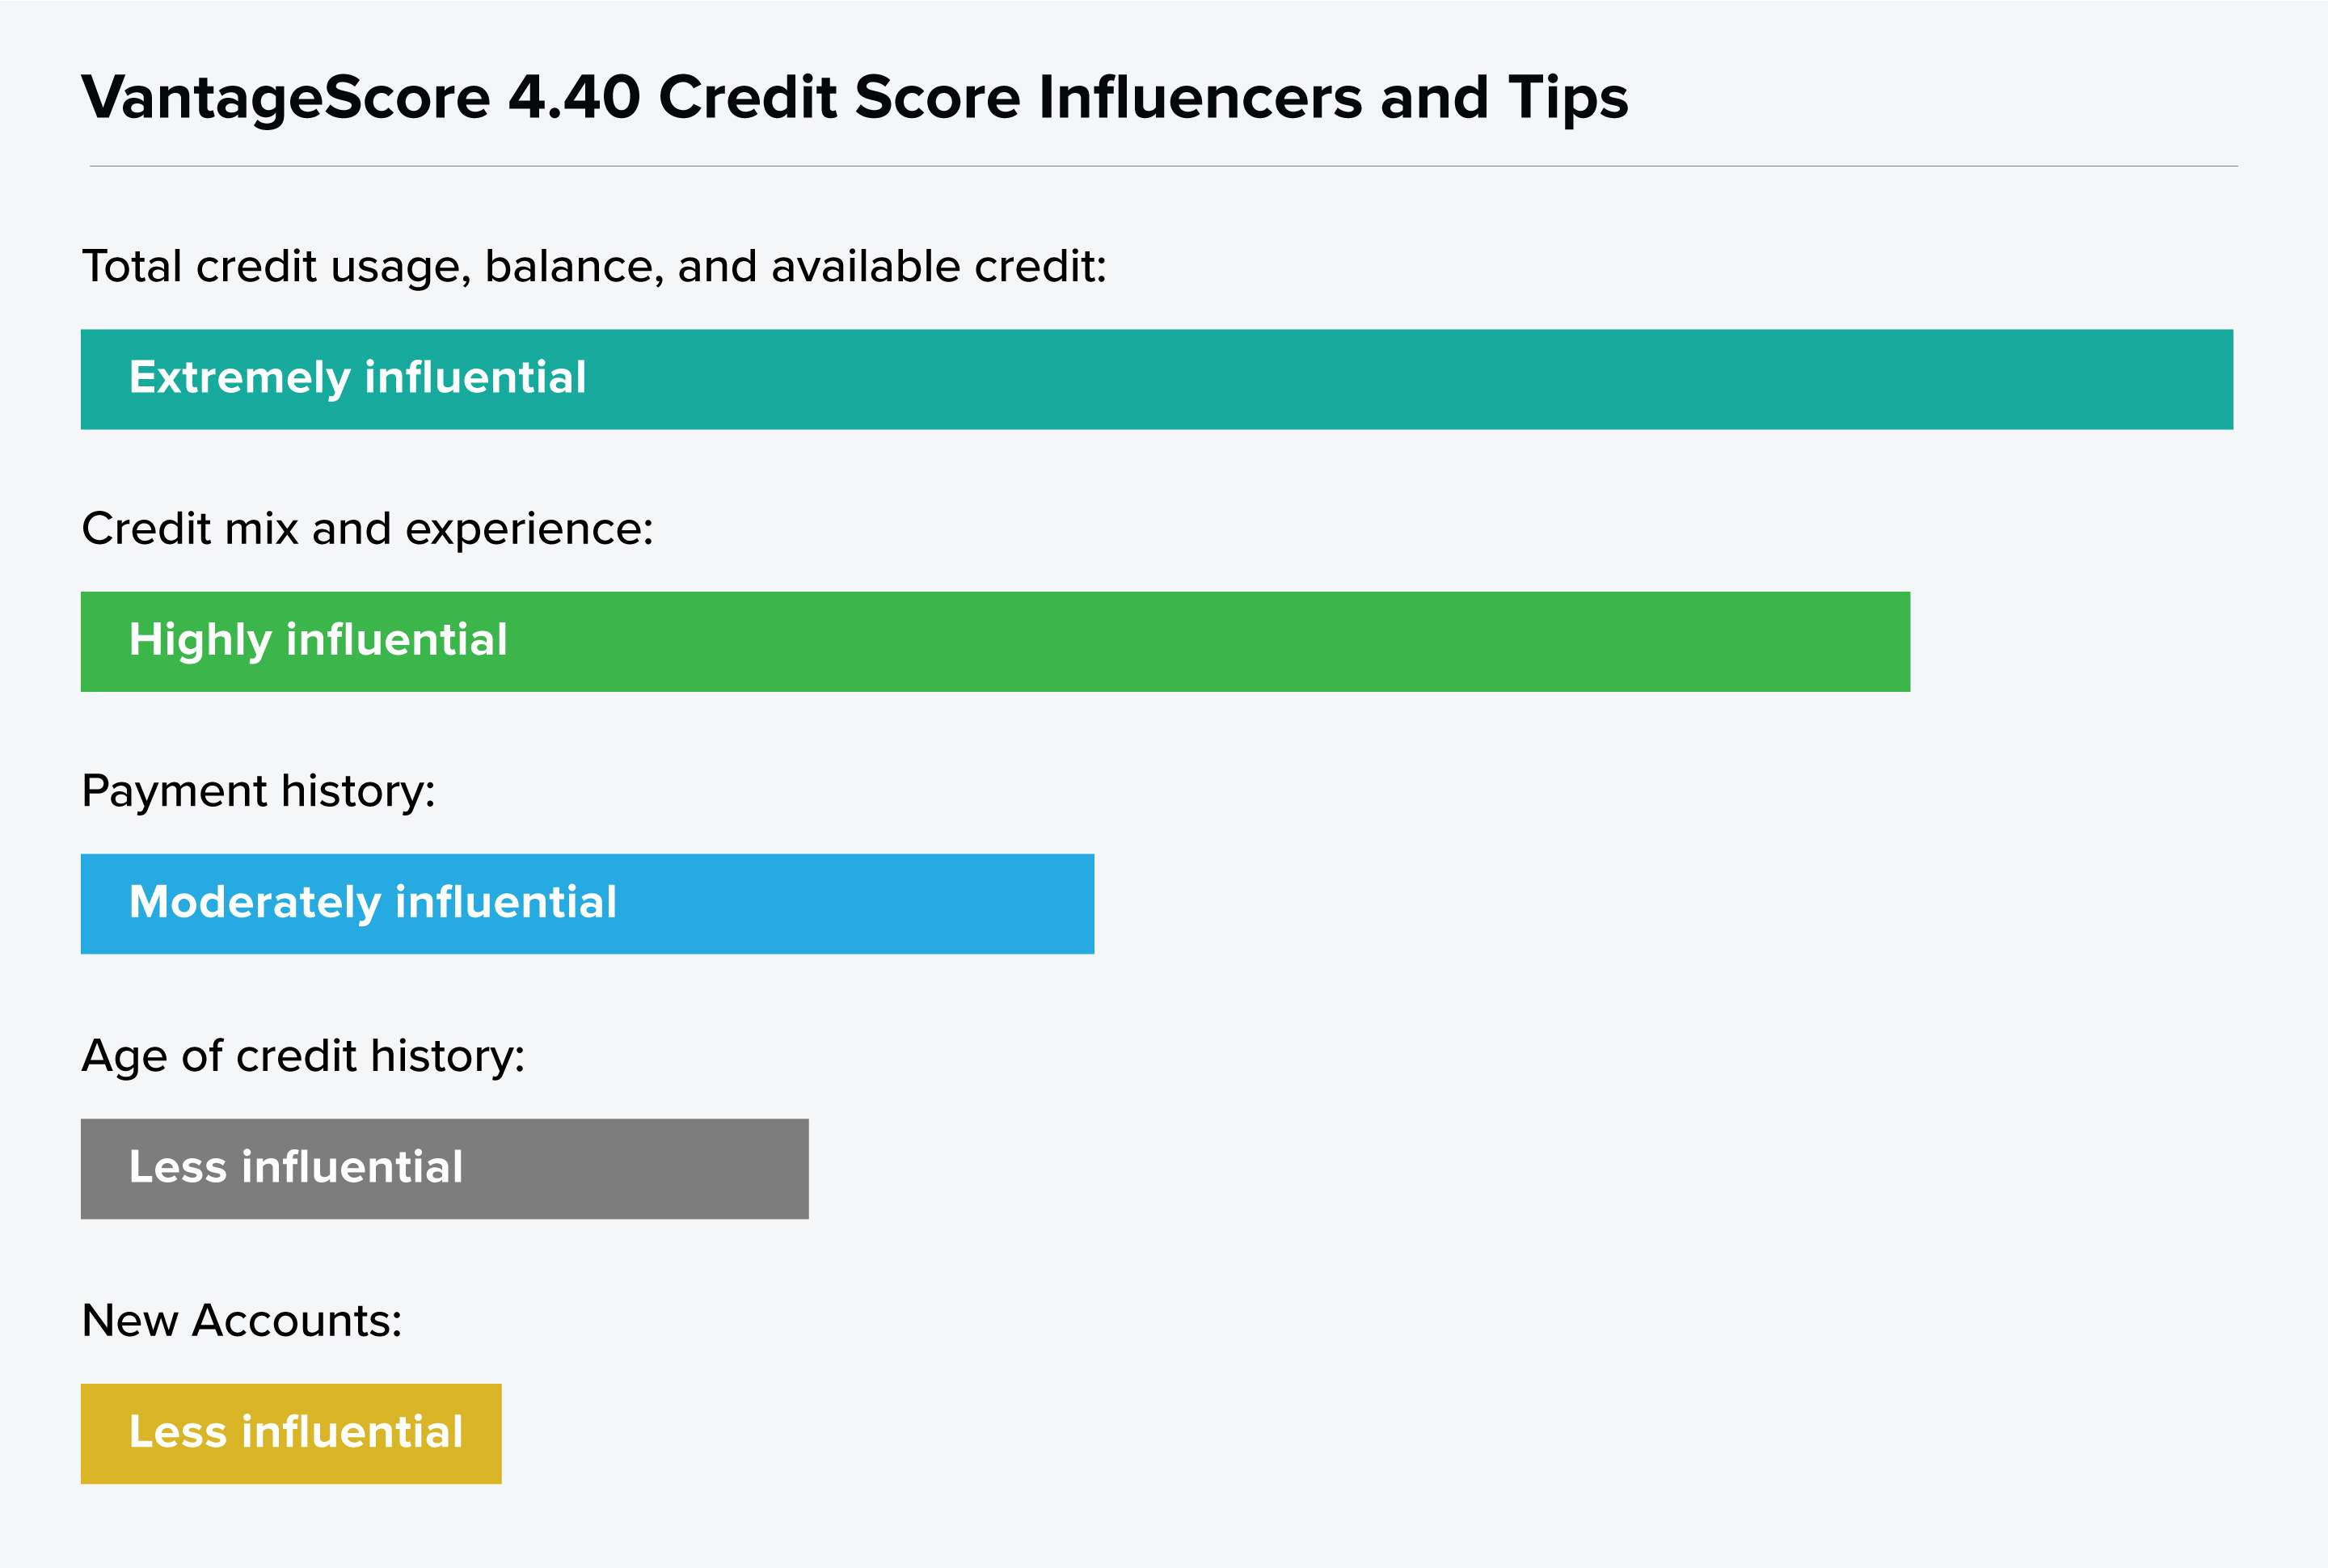 Graph showing the VantageScore 4.40 influencers by degree: total credit usage, credit mix, payment history, age of credit history, and new accounts.